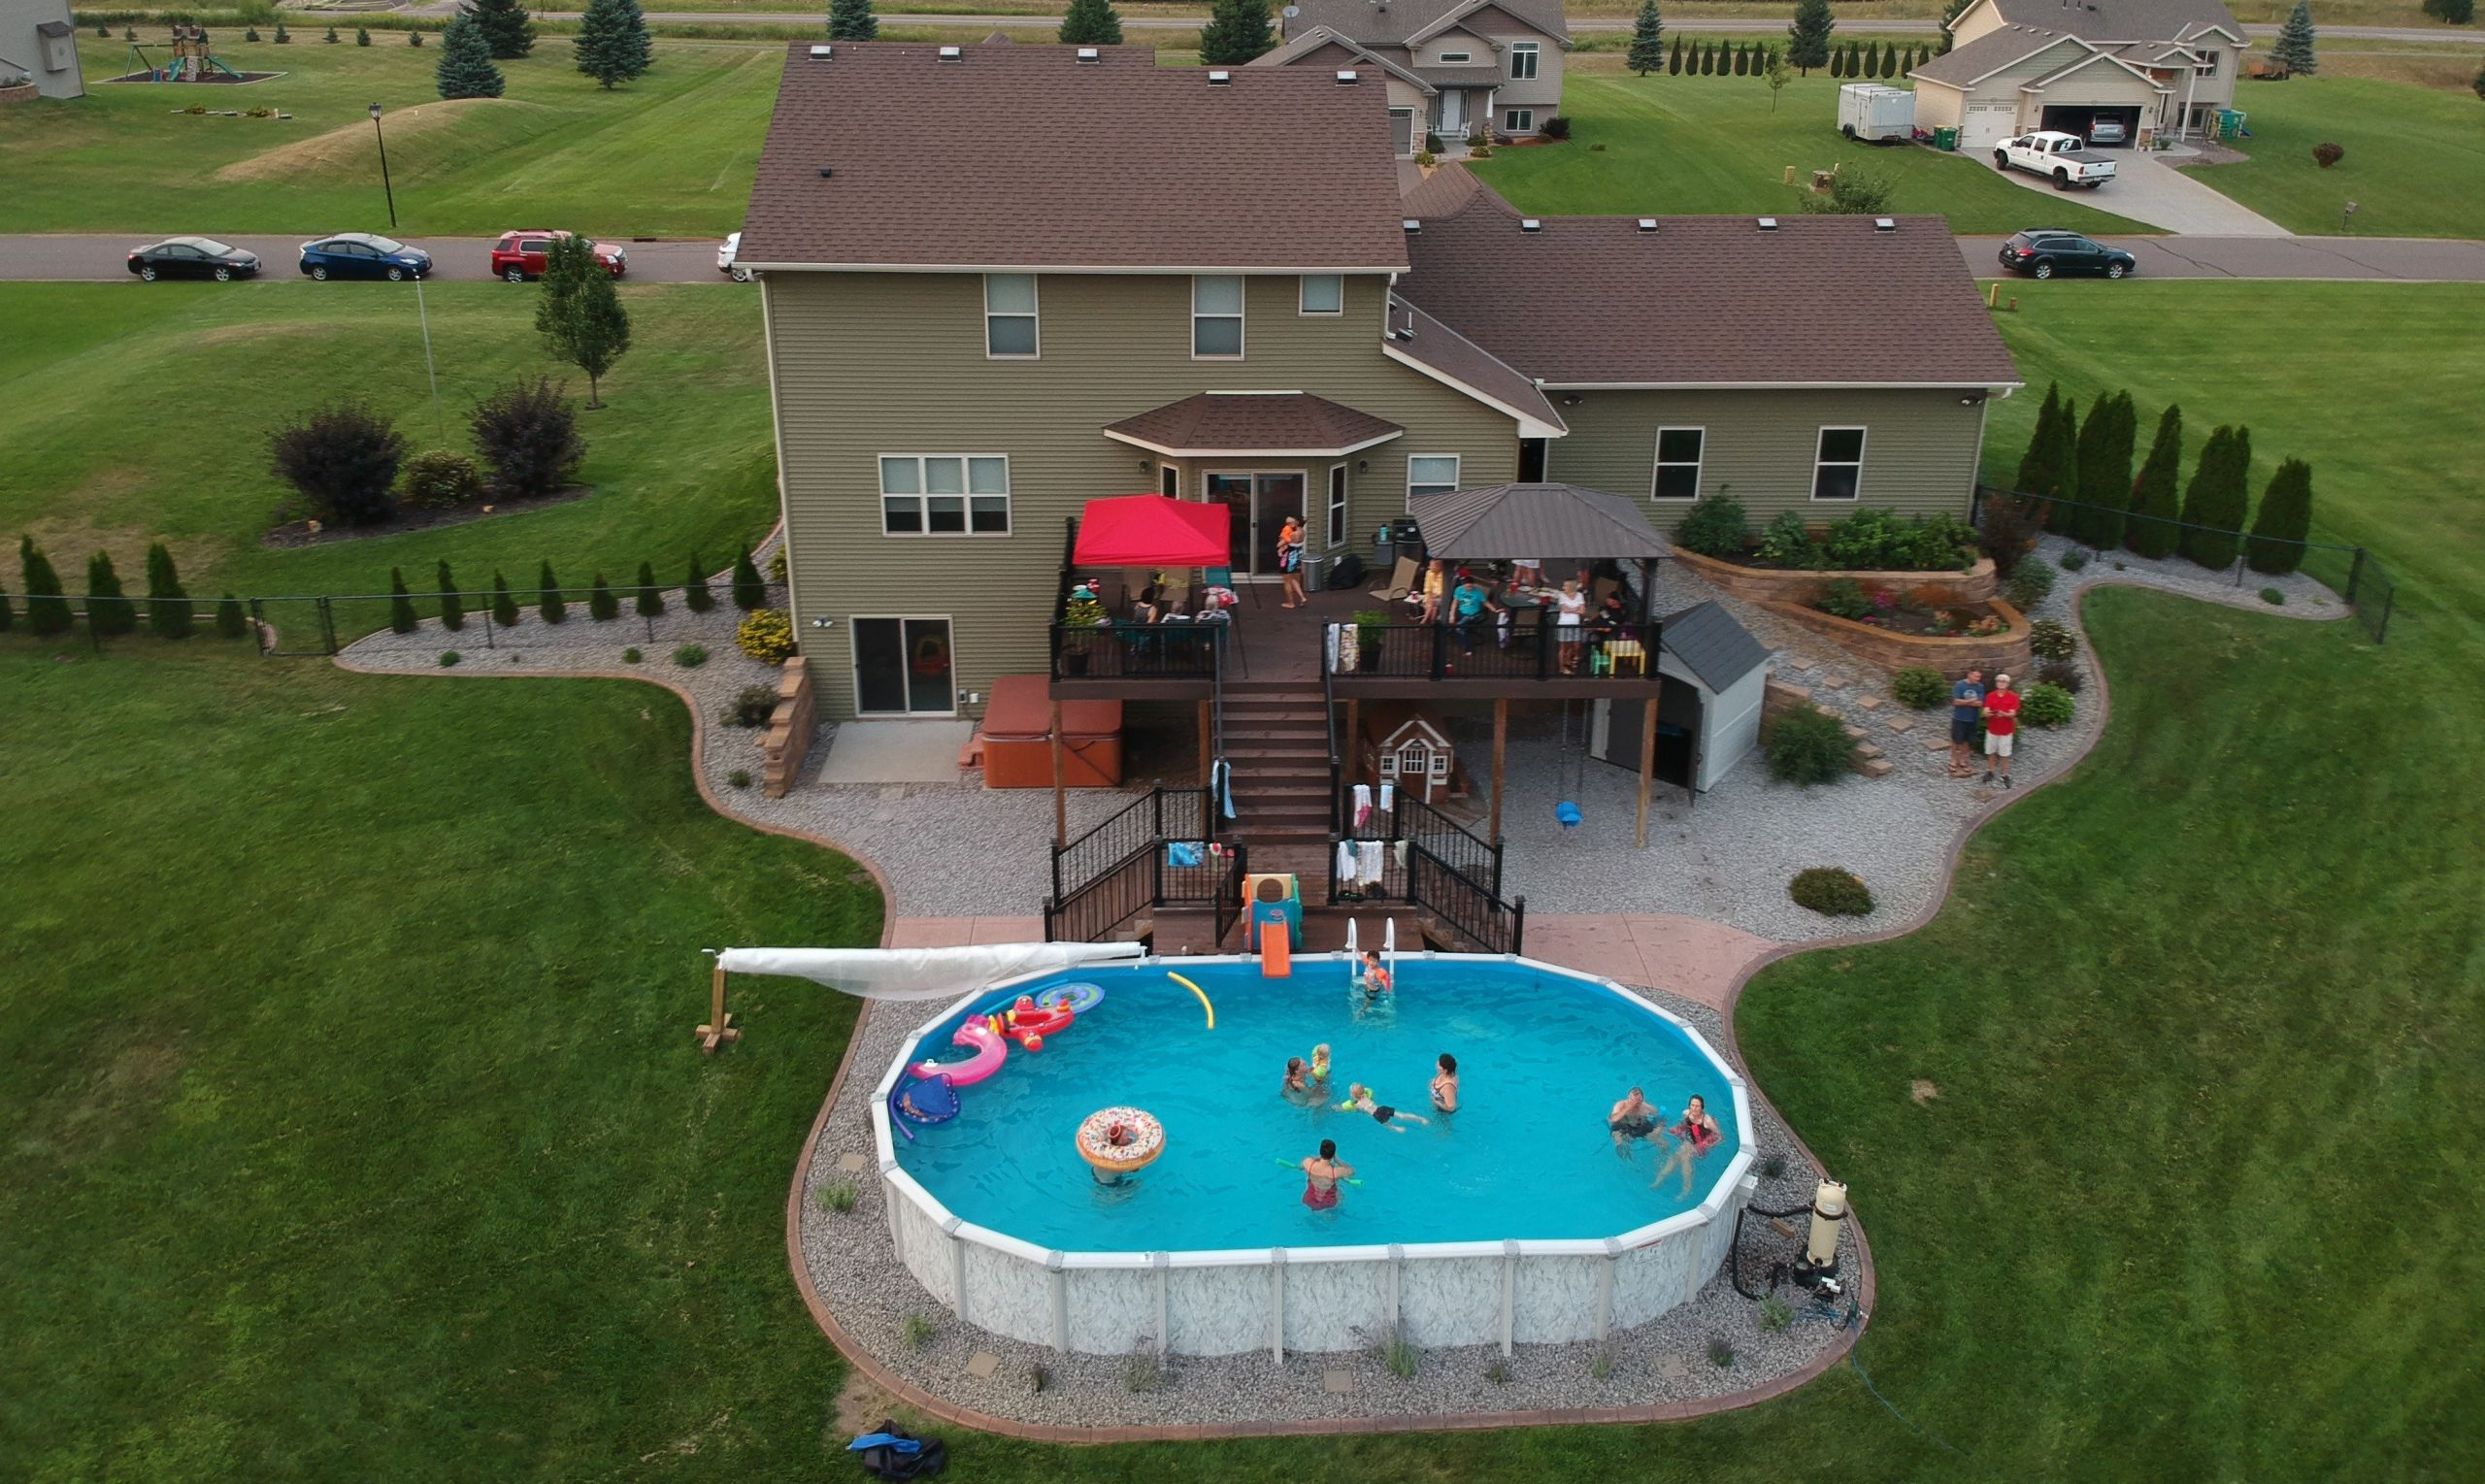 Above Ground Swimming Pool Cost  How Much Does An Ground Pool Cost to Build